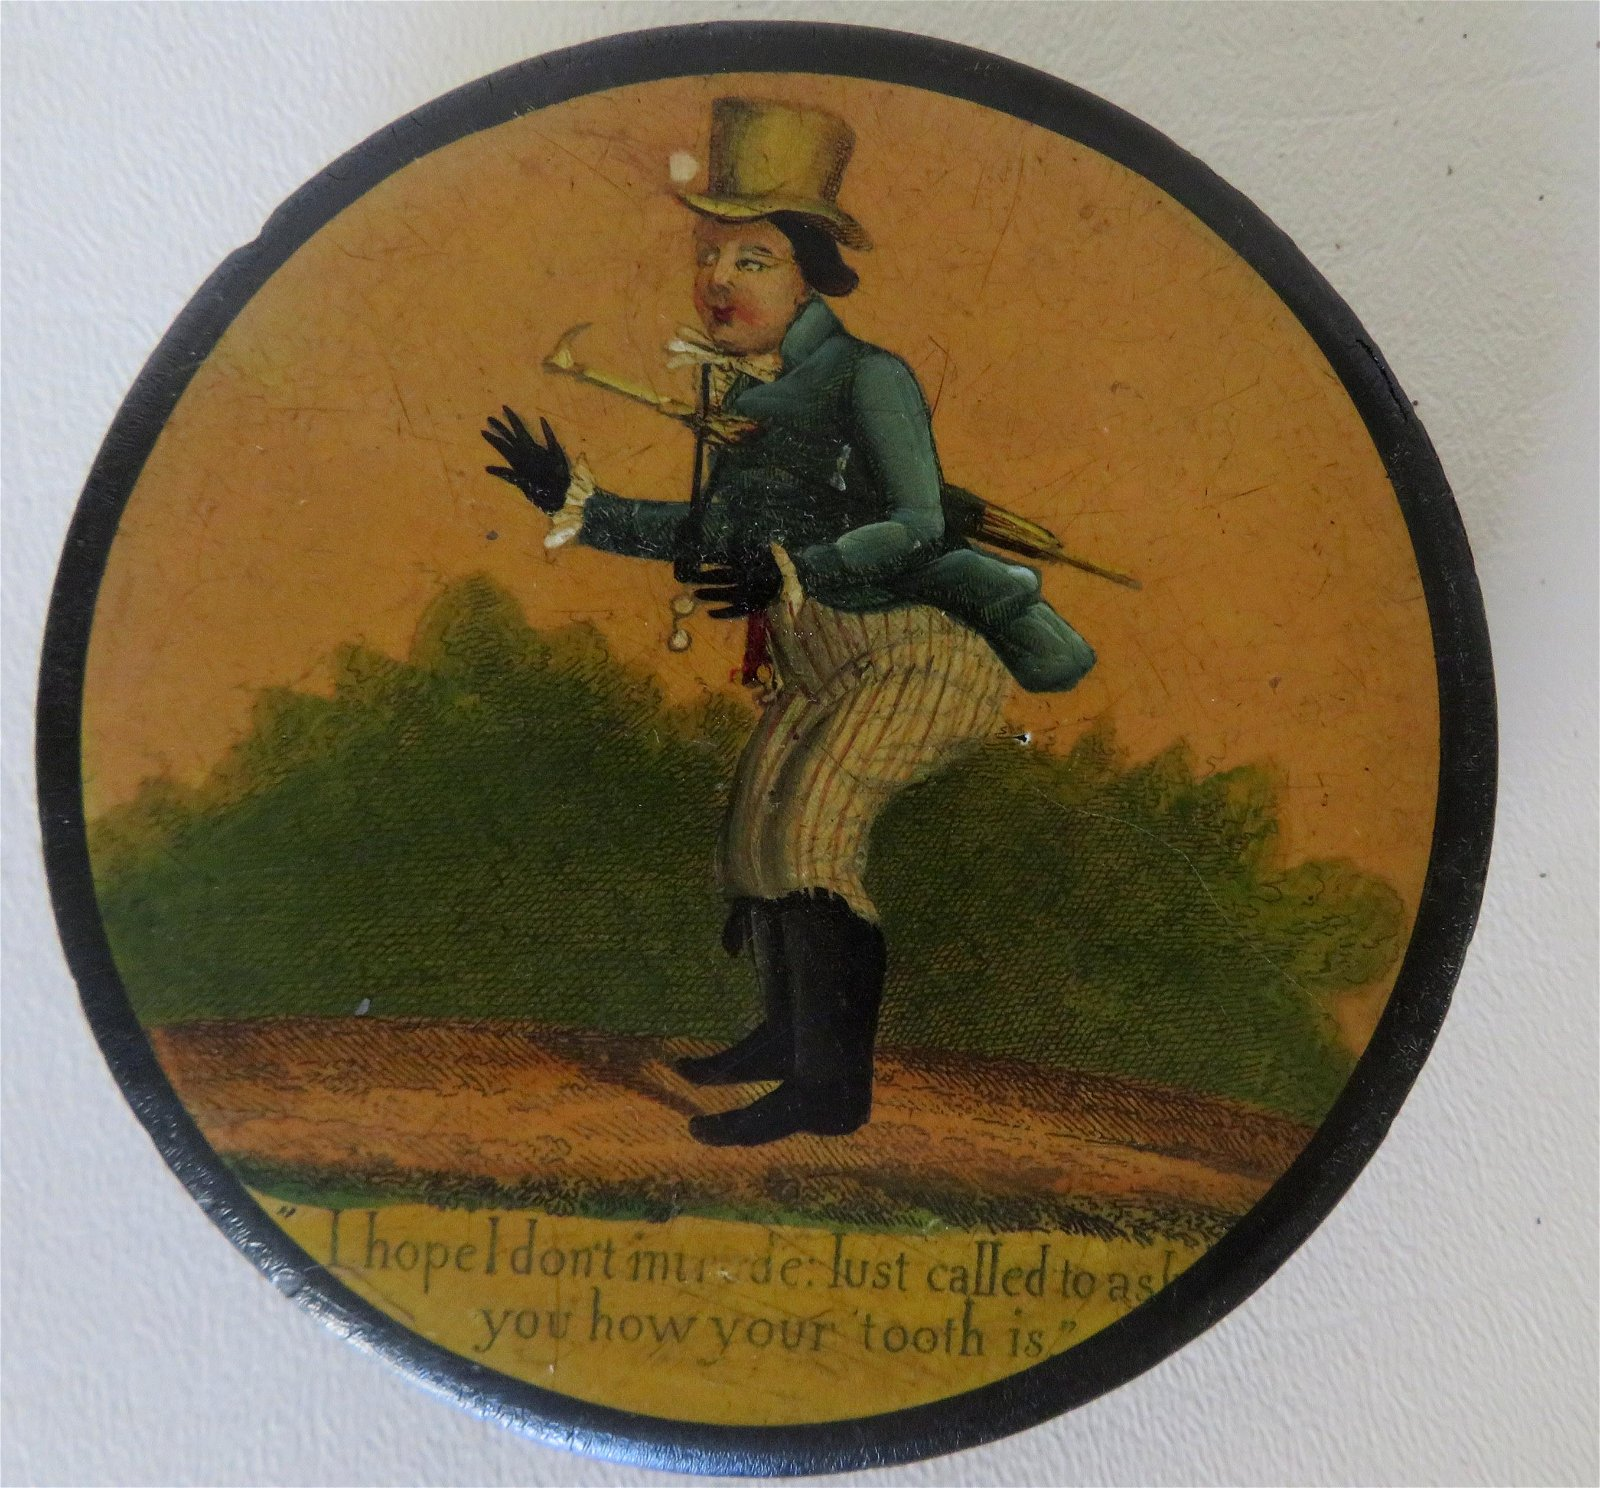 An circular paper mache snuff box with hand painting of